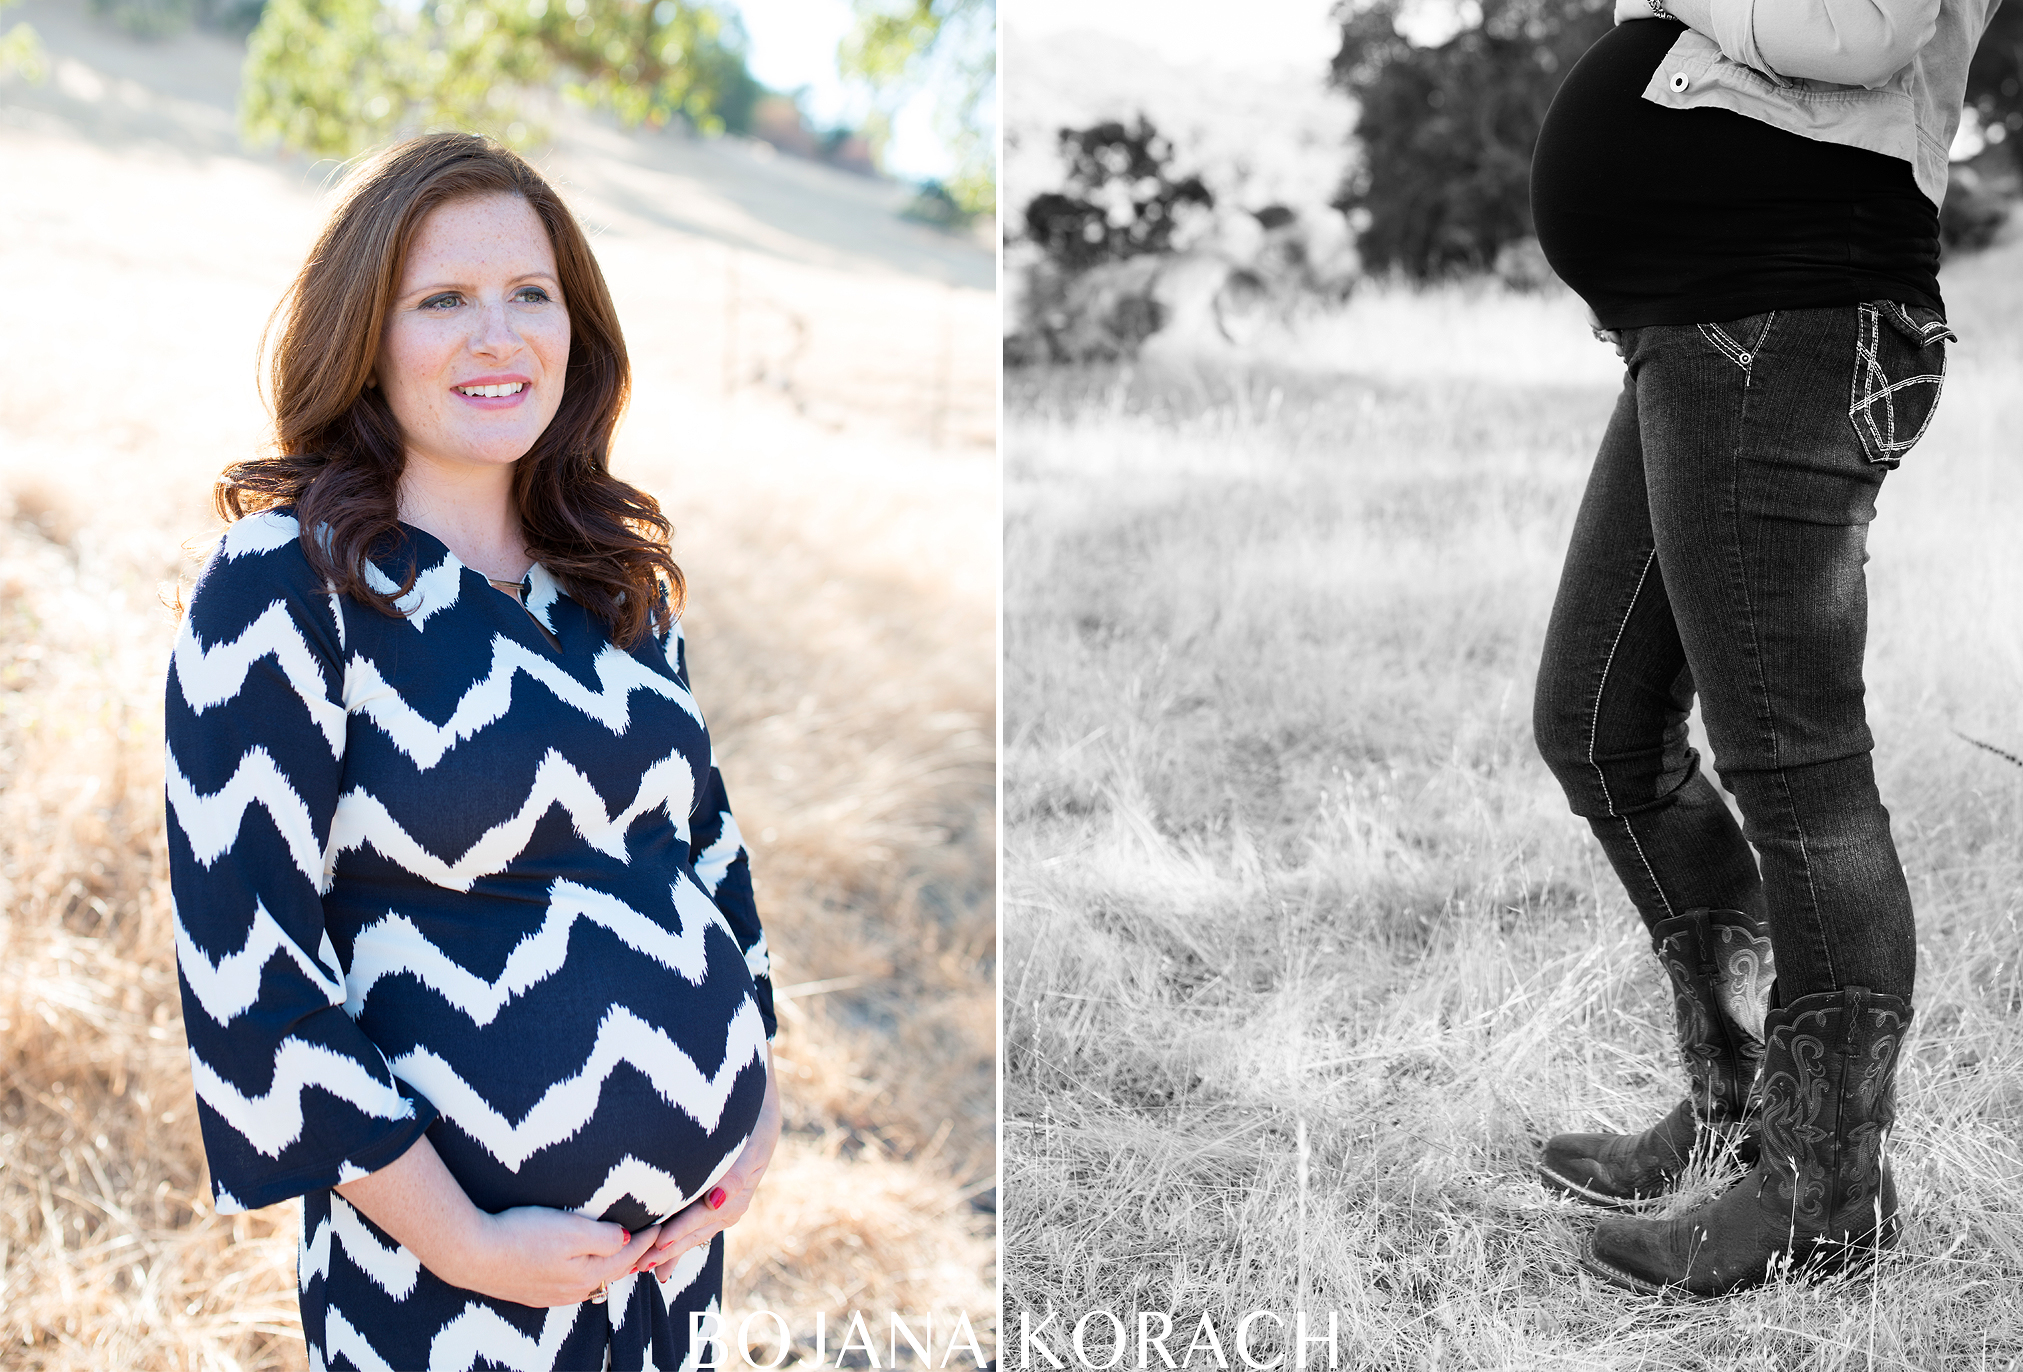 walnut-creek-maternity-photography-8